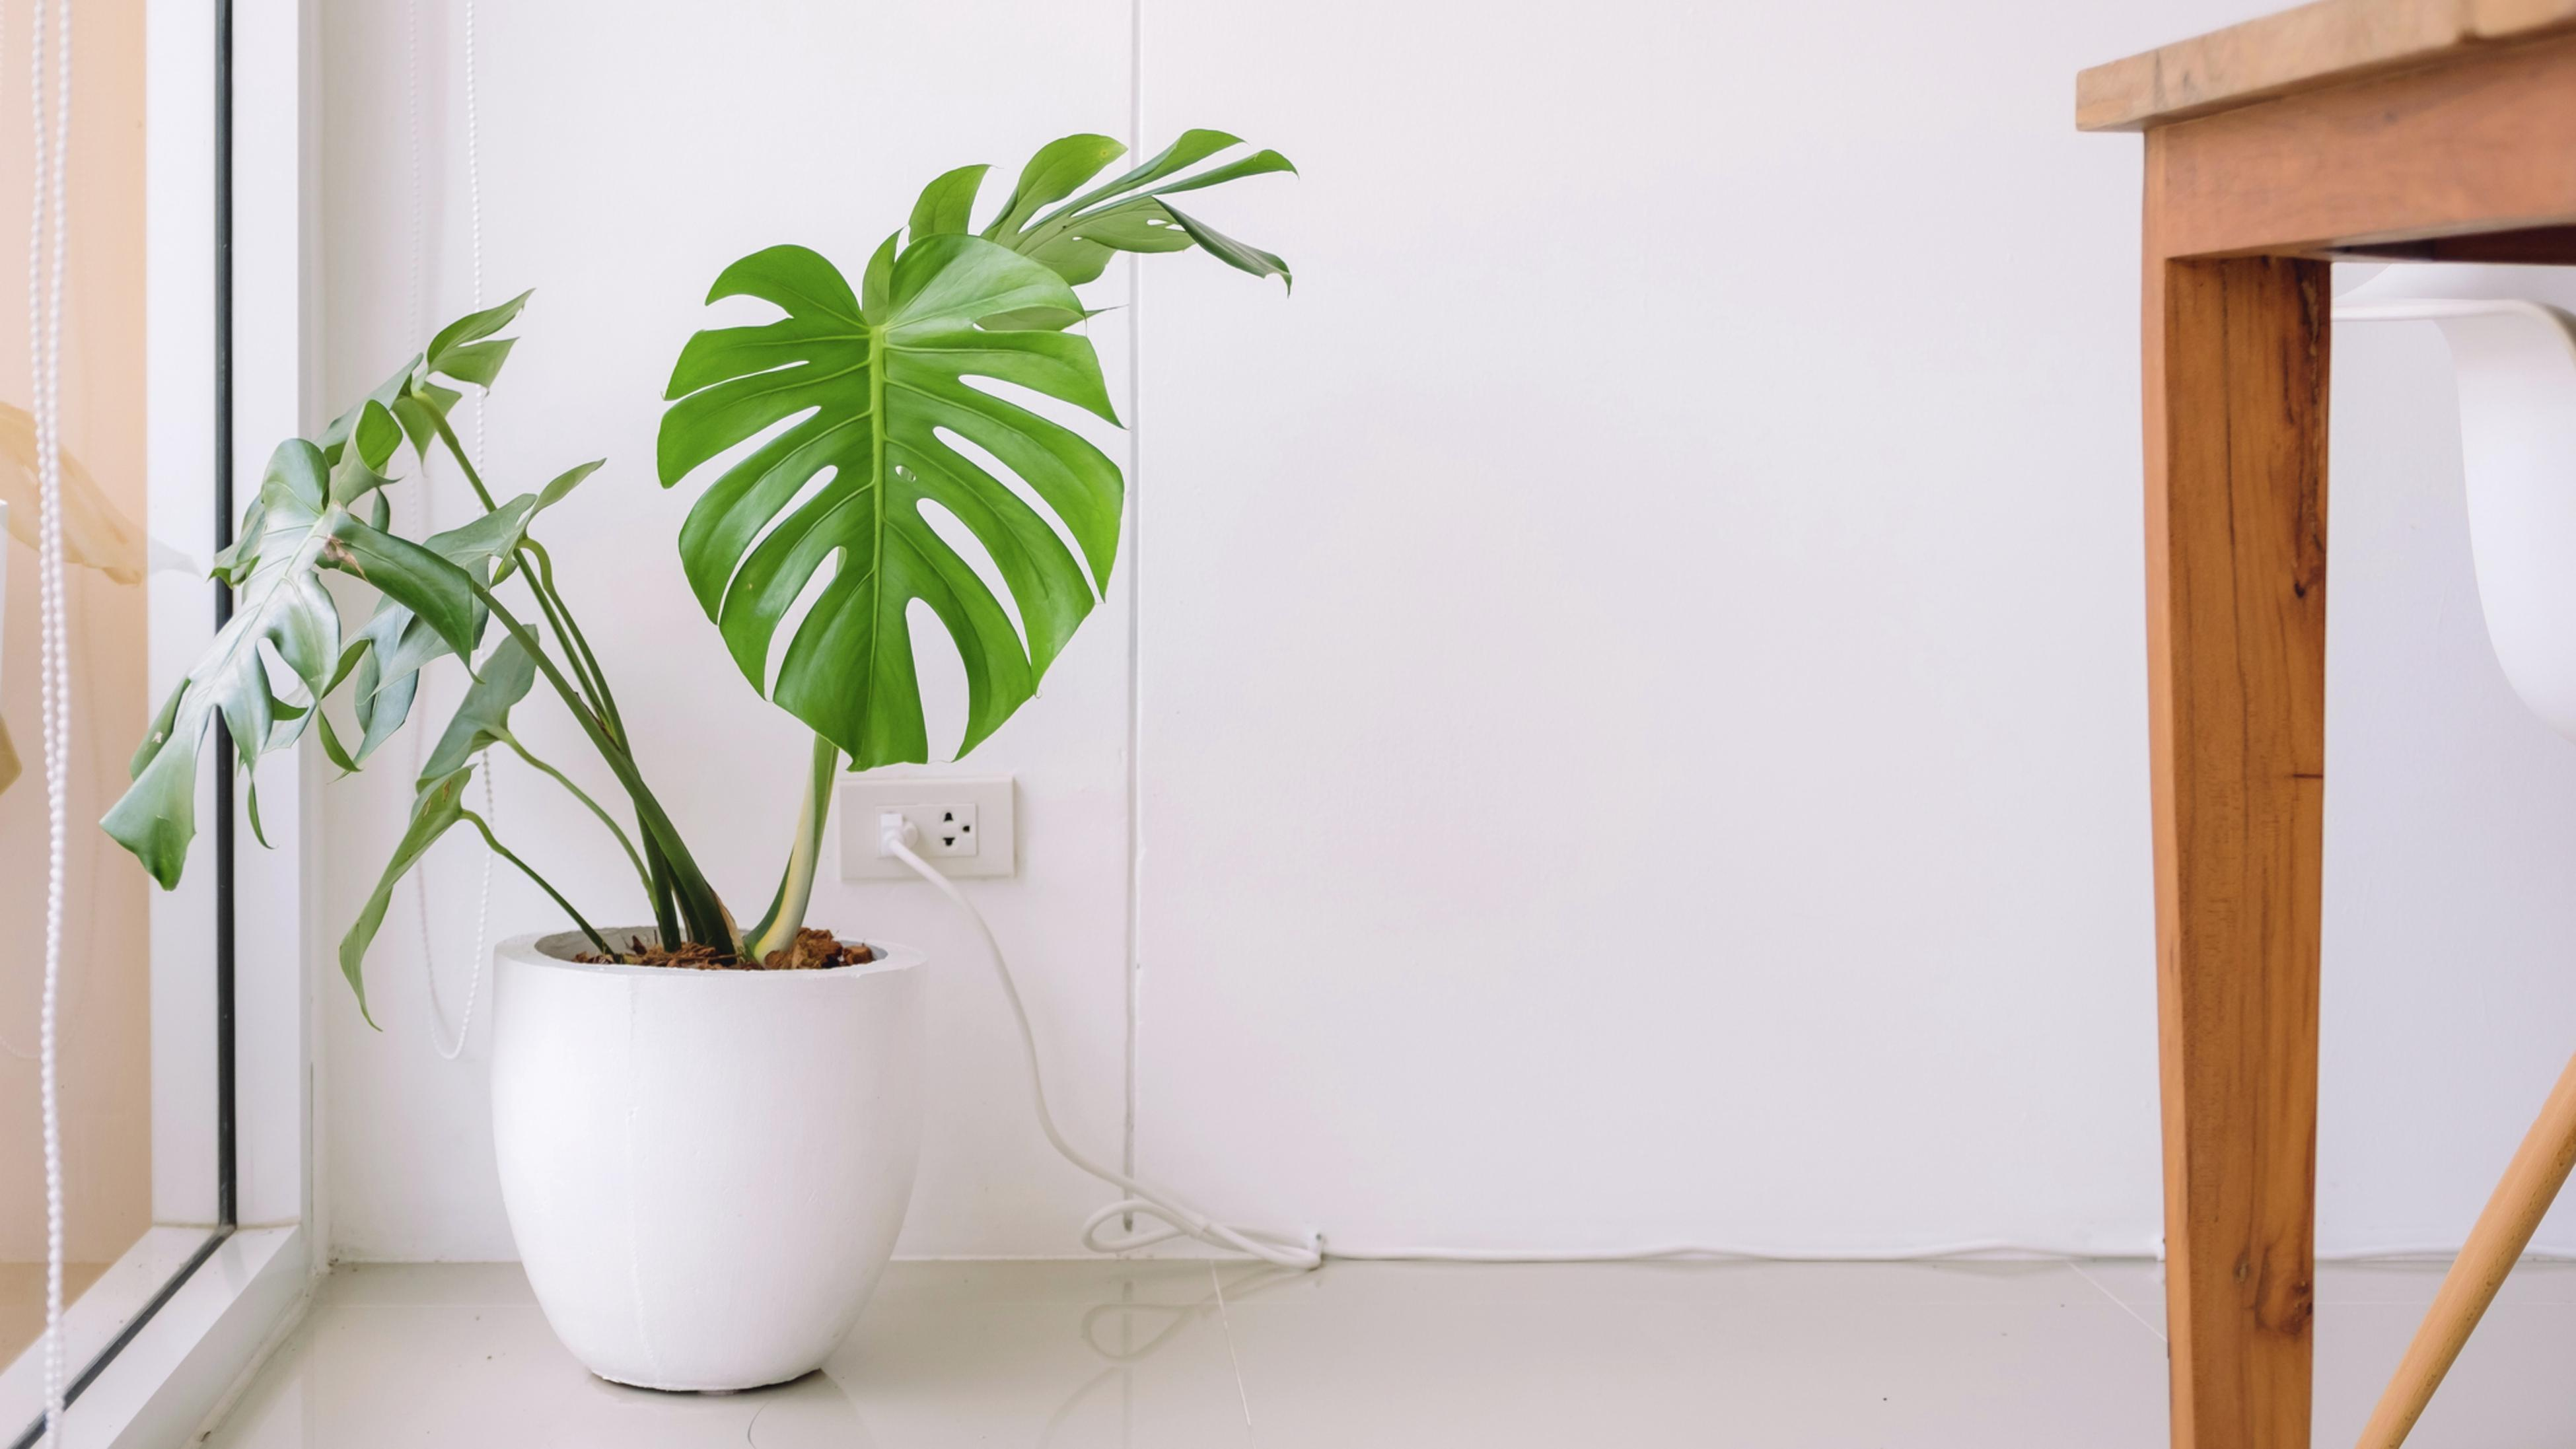 A potted monstera plant in an indoor setting